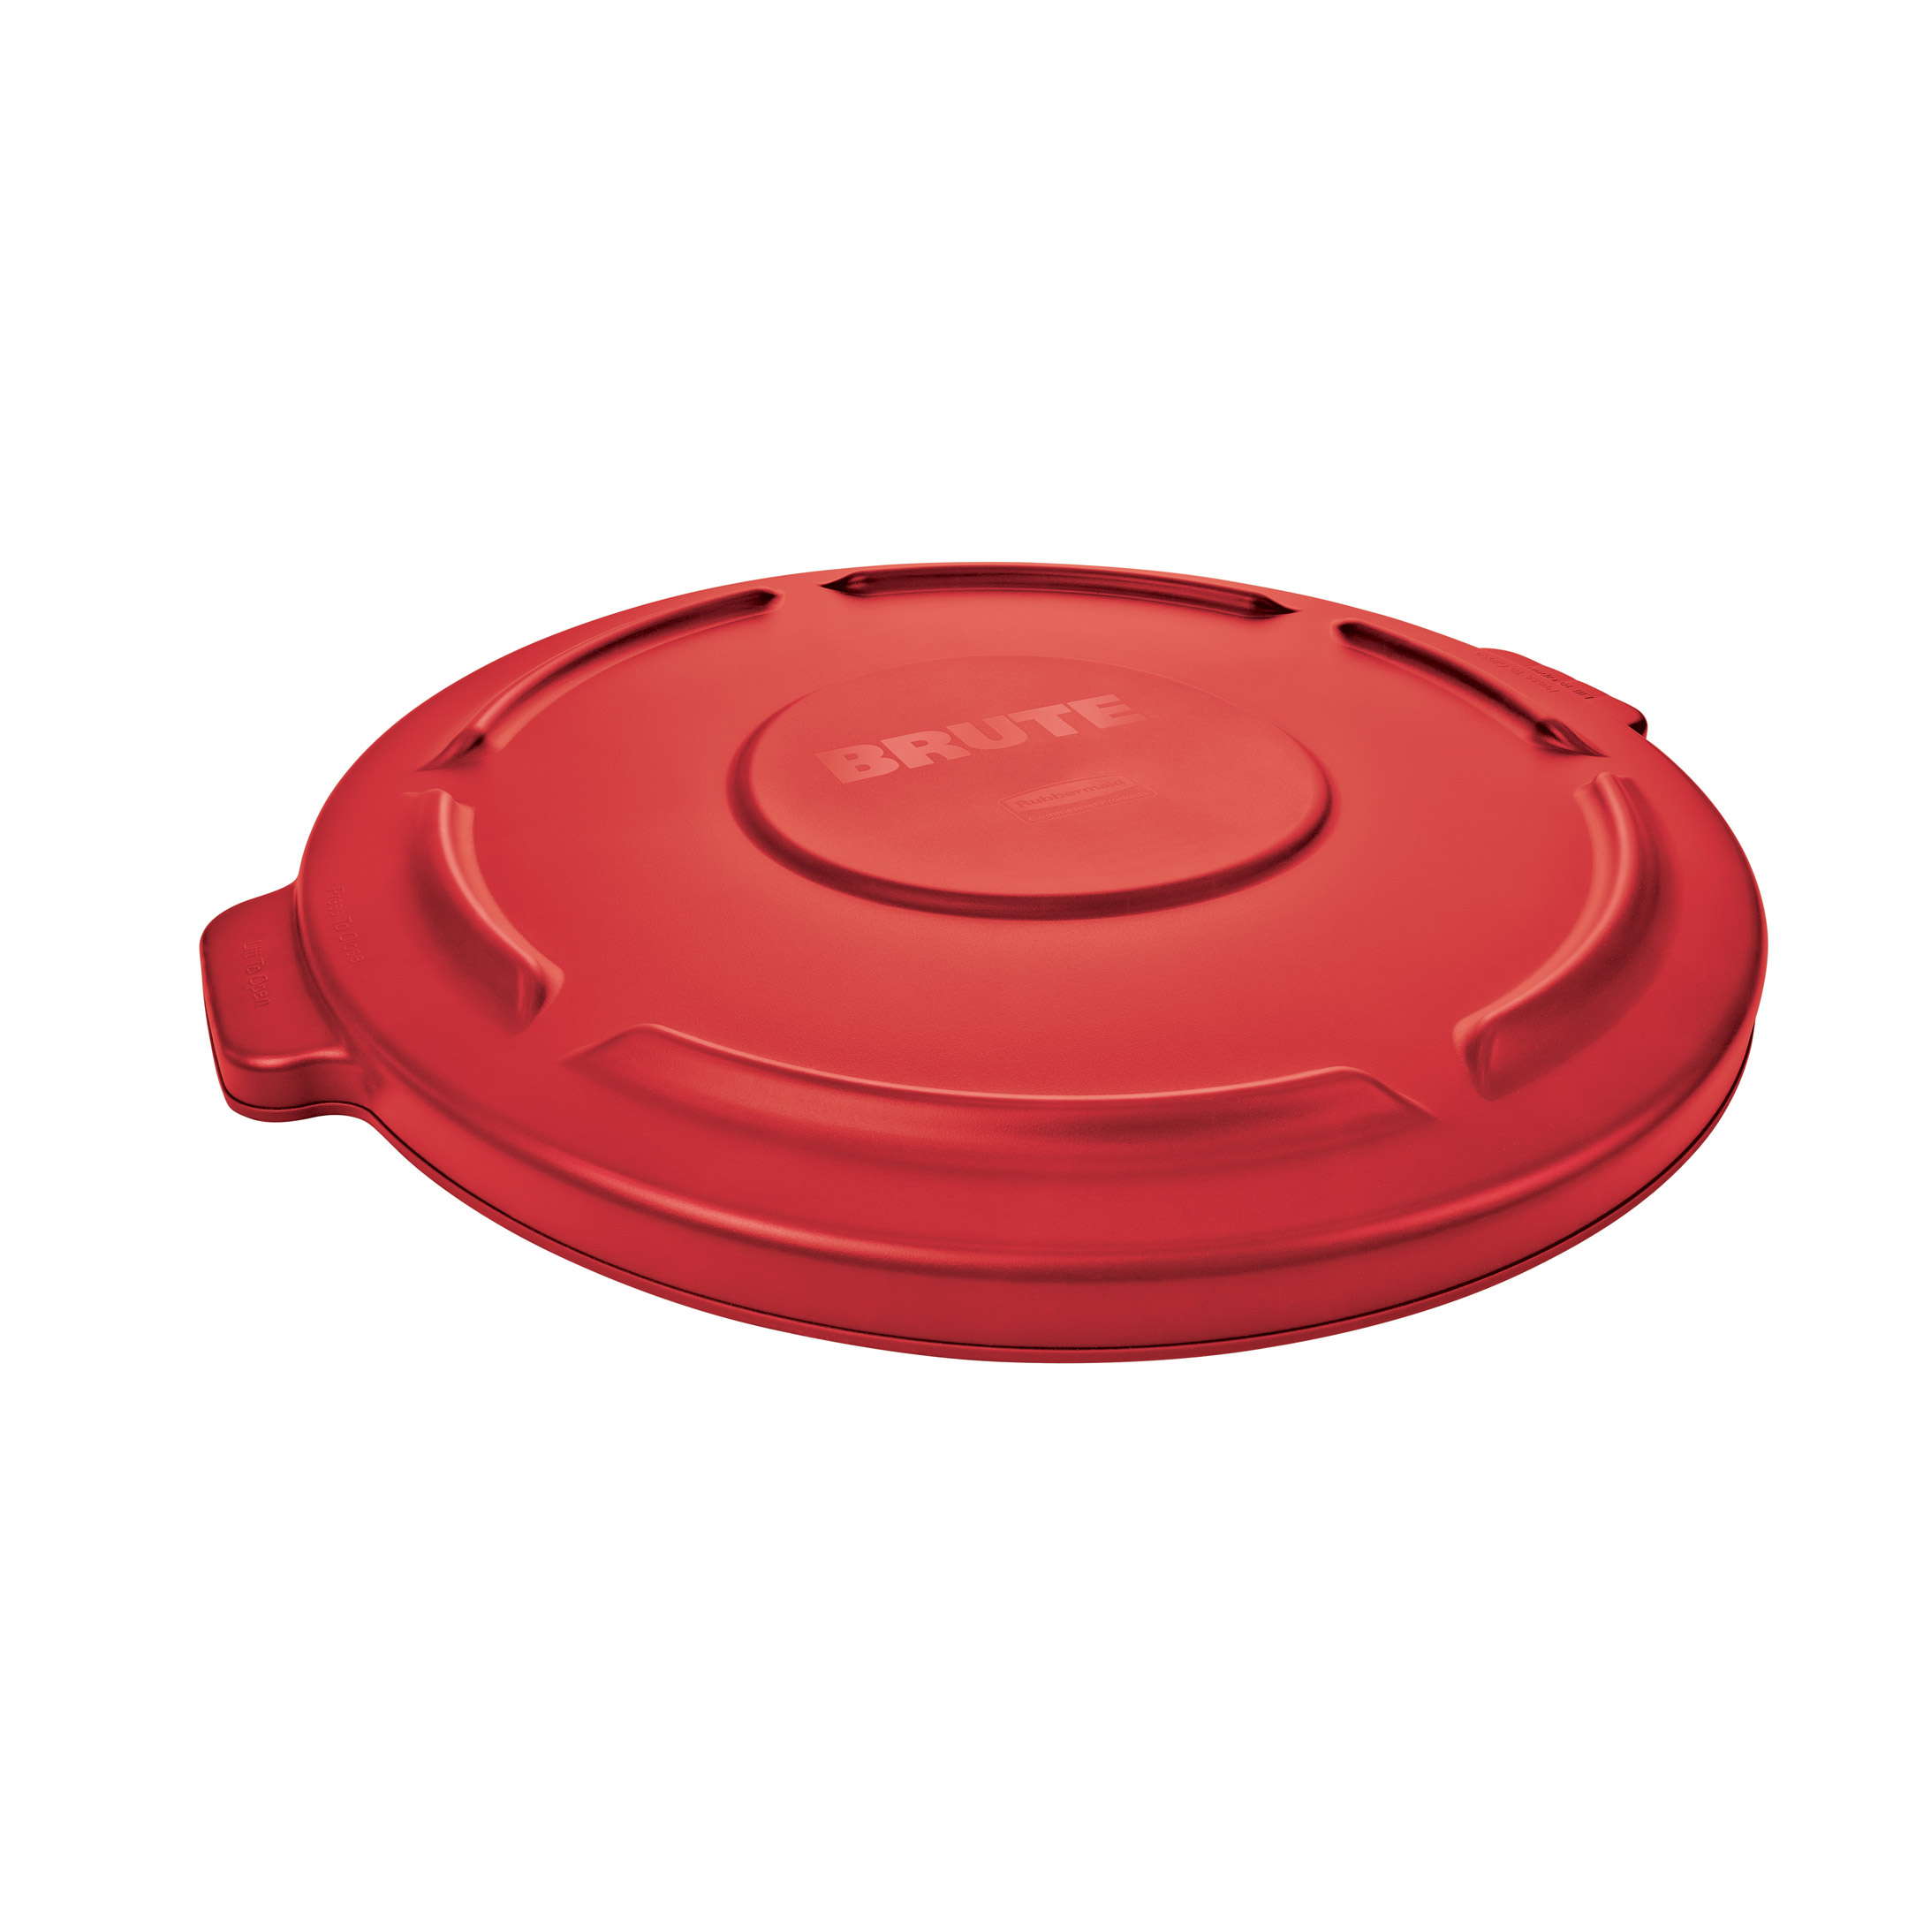 Rubbermaid Commercial Products FG260900RED trash receptacle lid / top